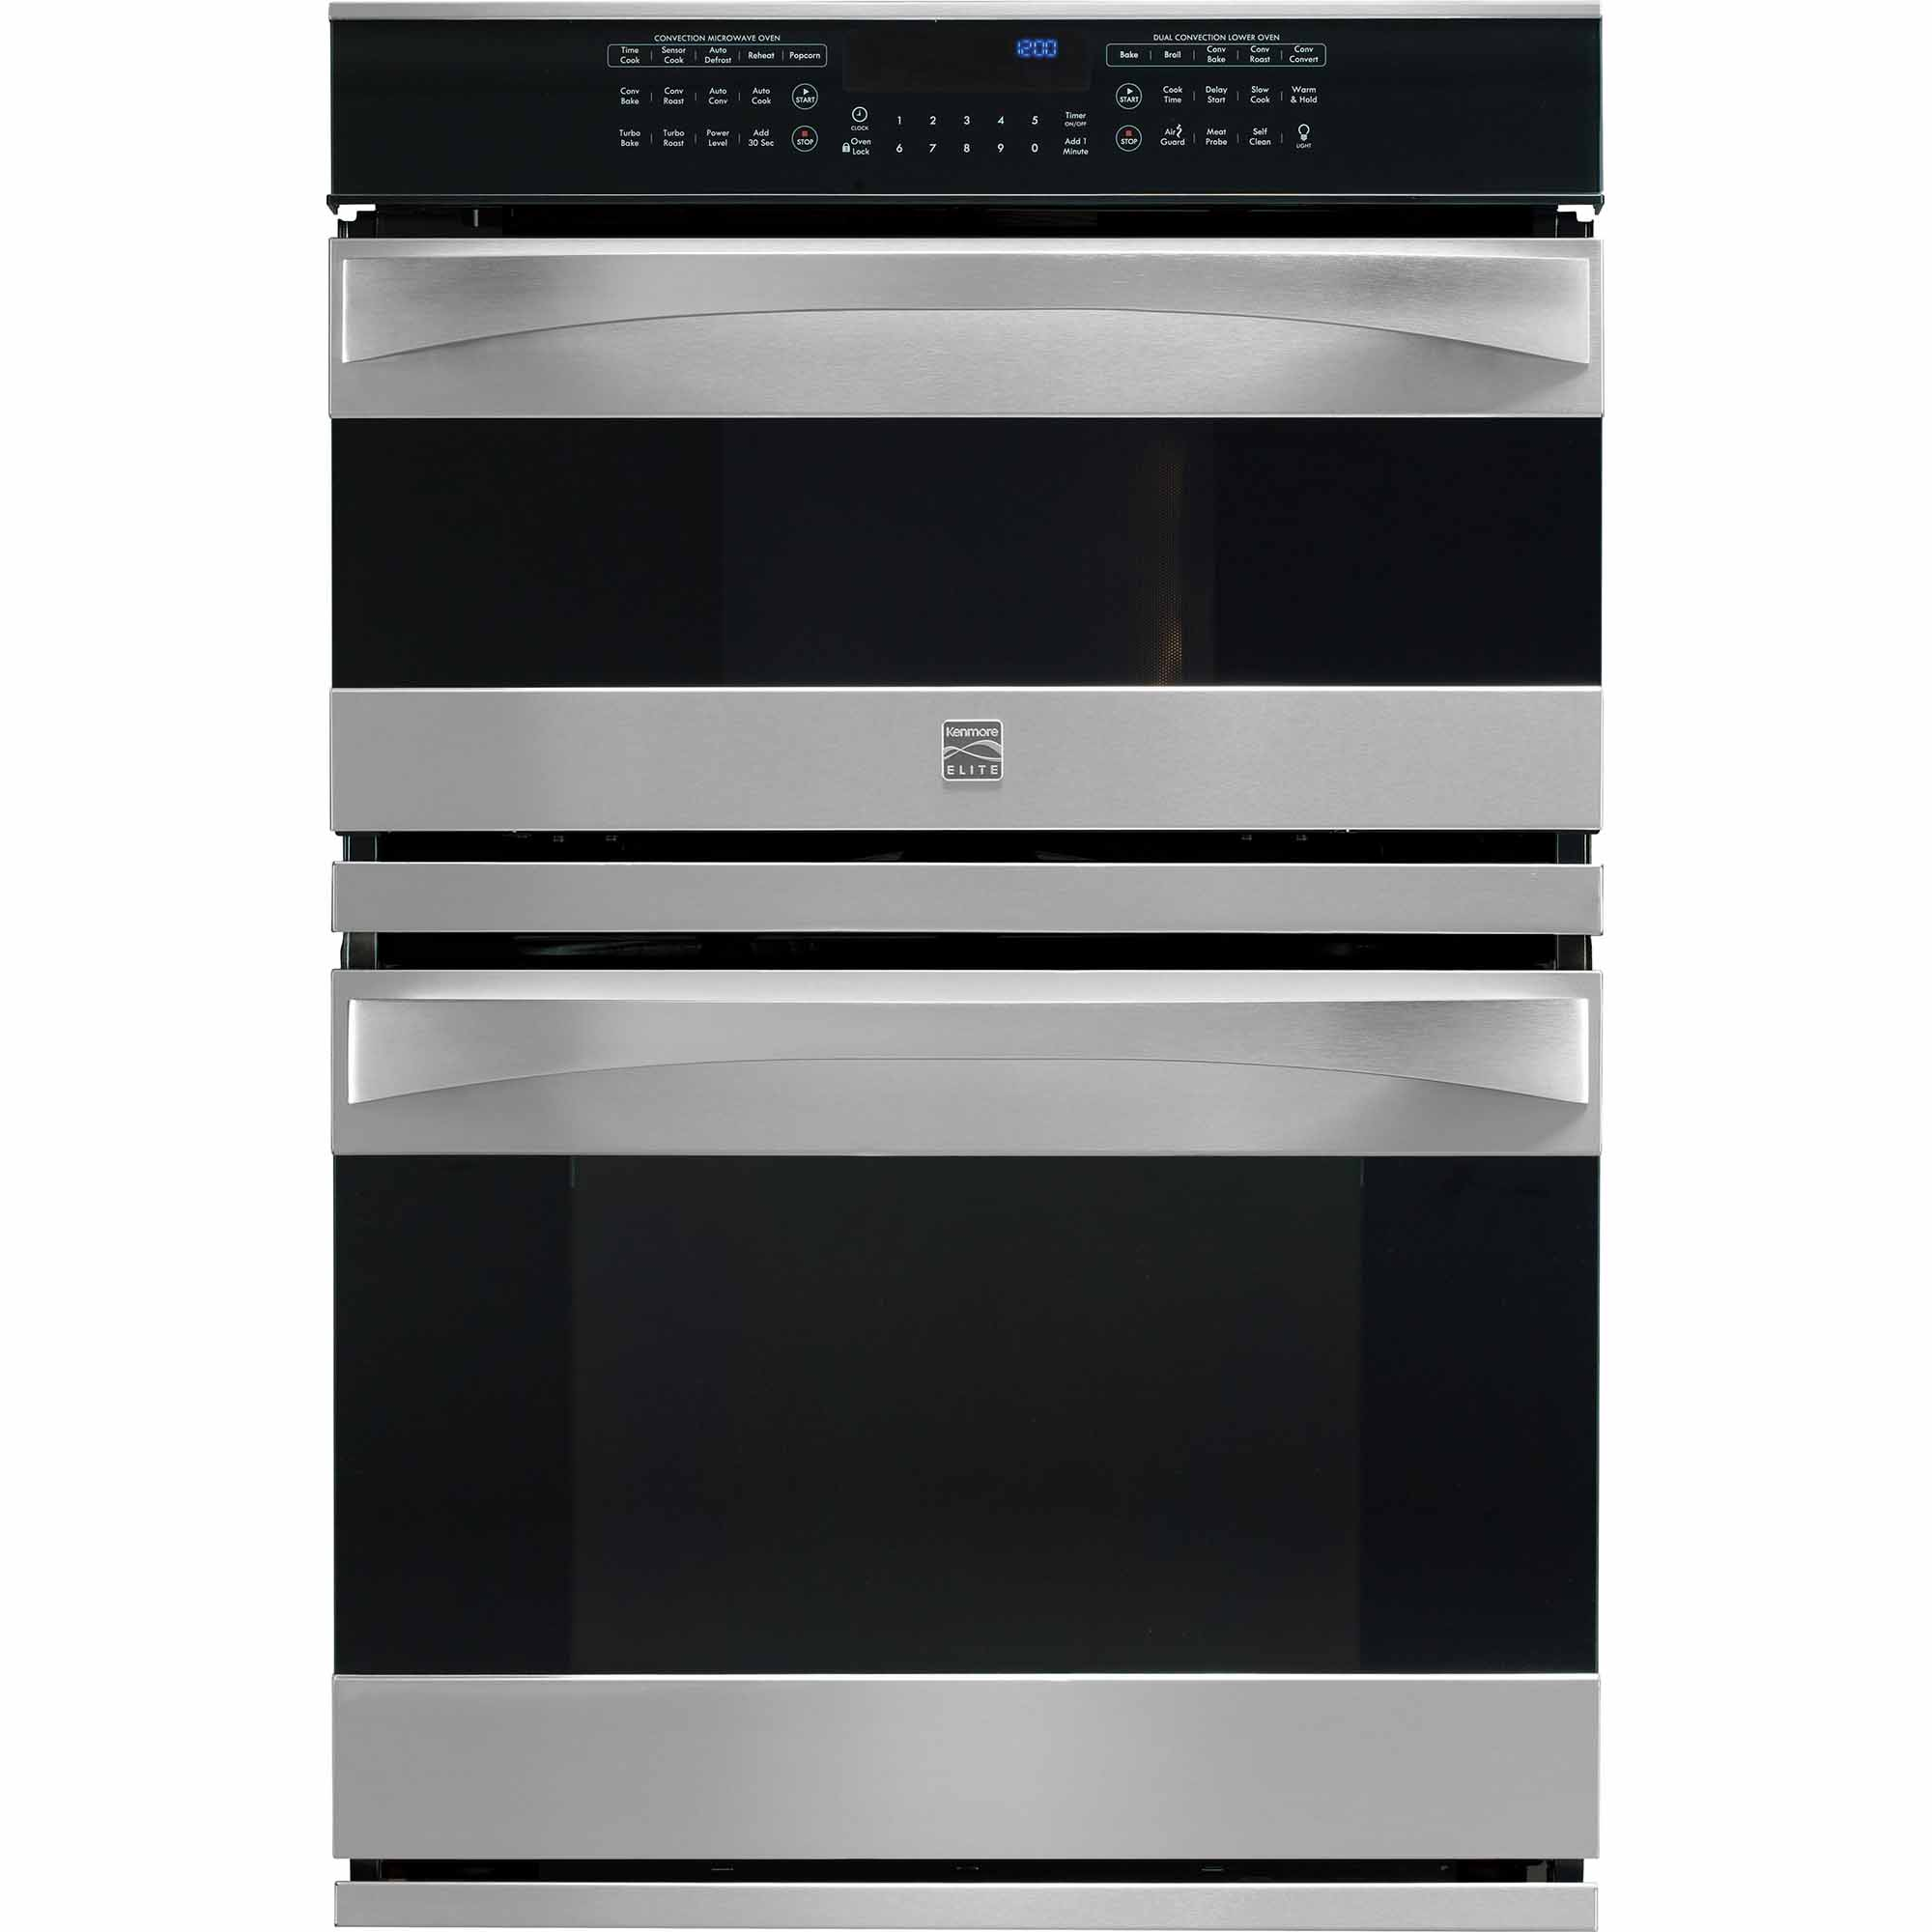 Kenmore Elite 49113 30 Electric Combination Oven